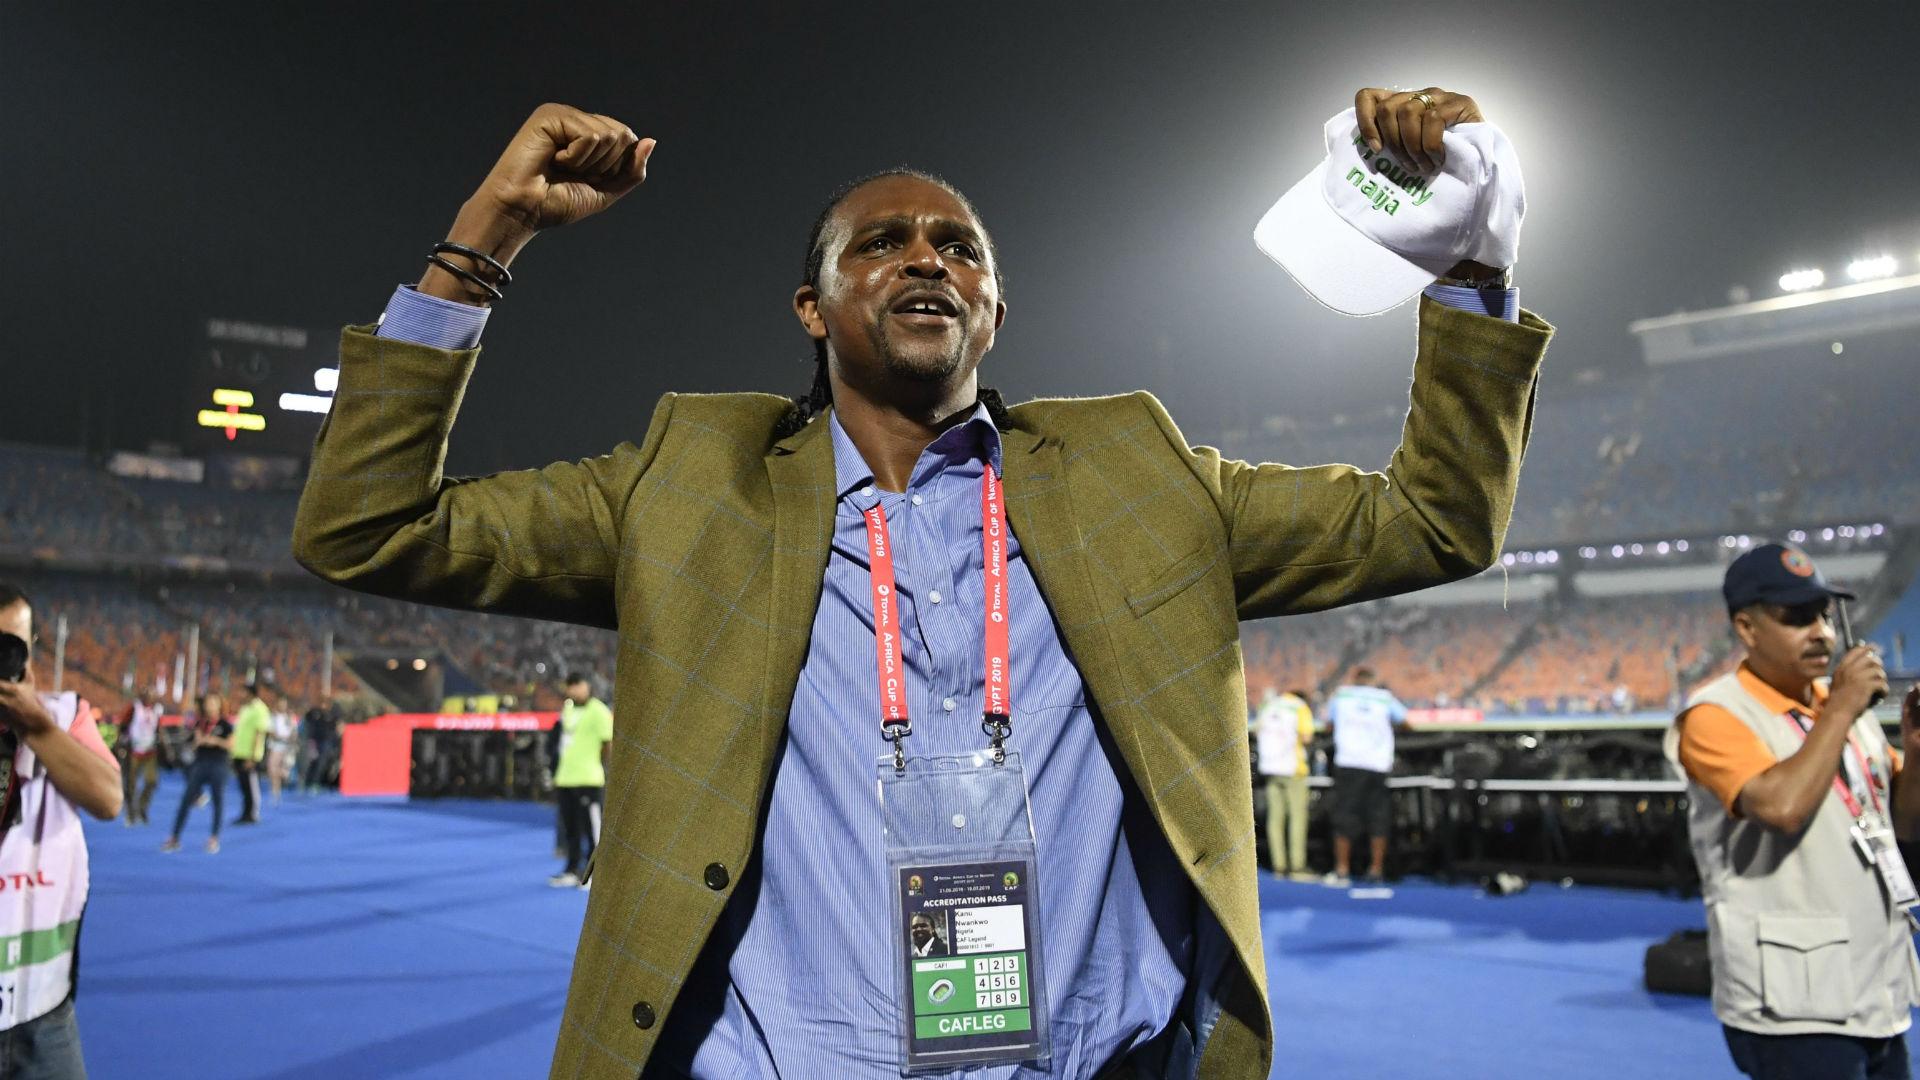 An AFCON semifinal and the Nigerian billionaires' promise of a windfall